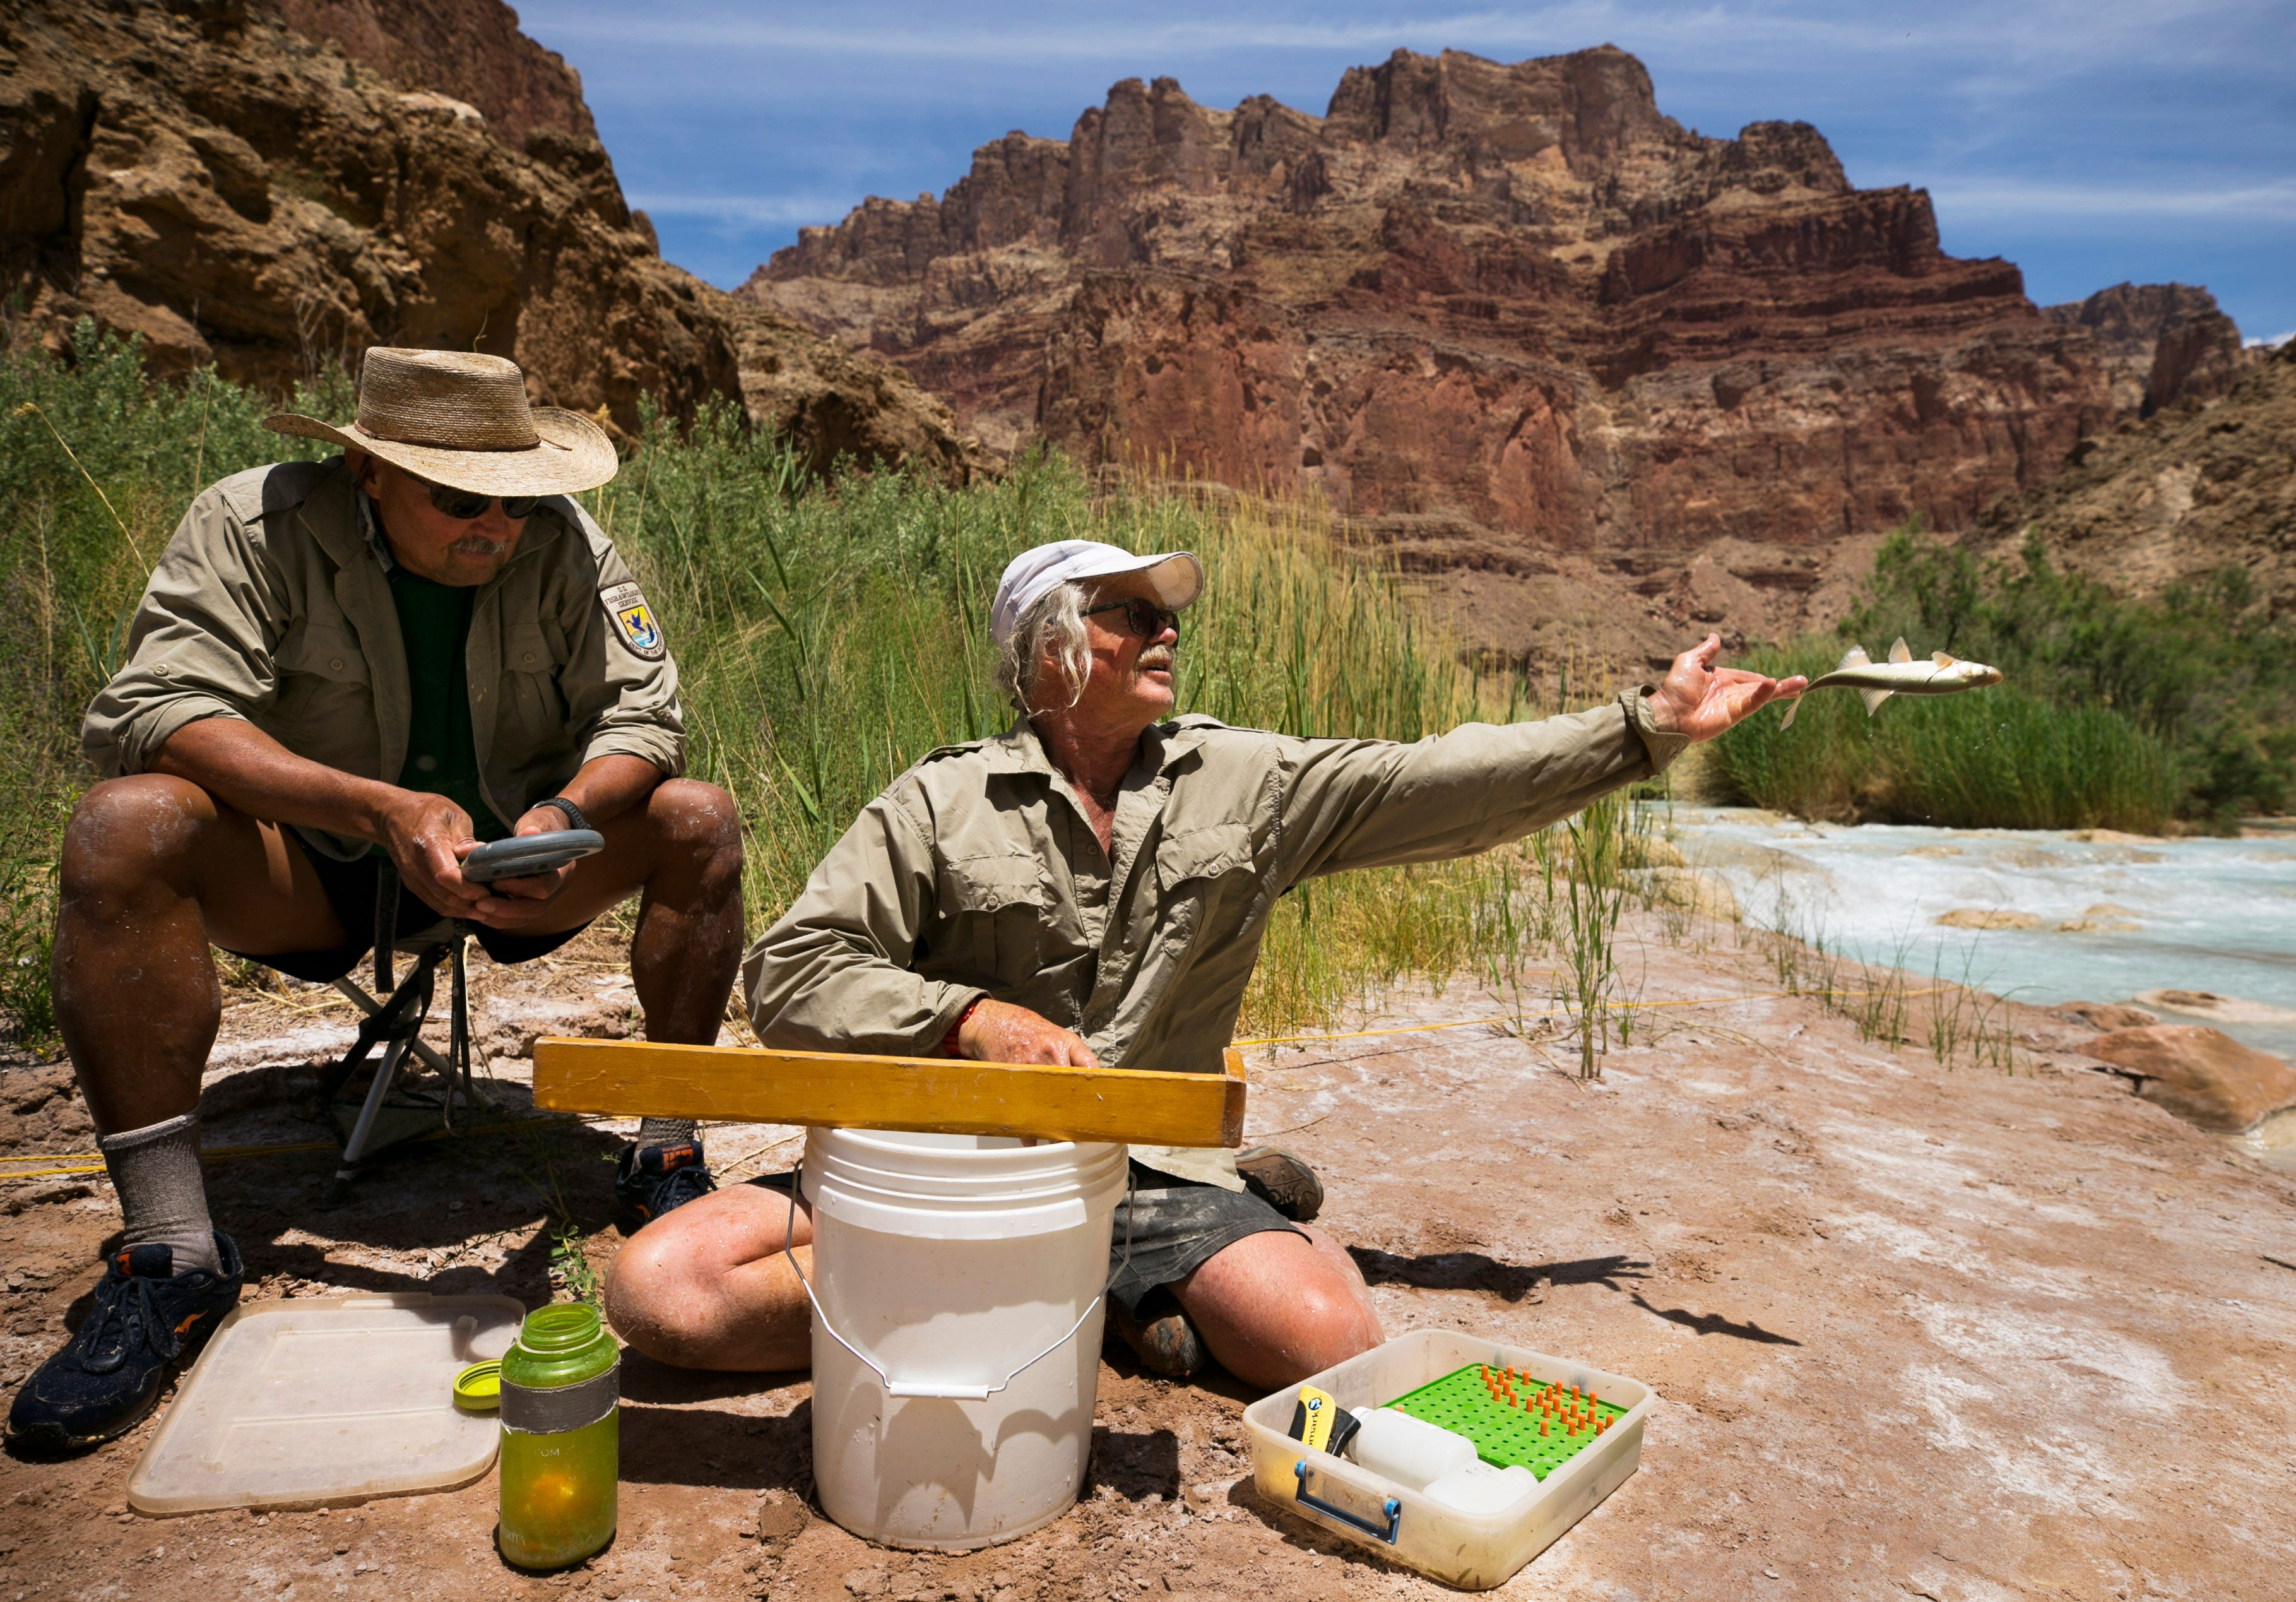 Randy Van Haverbeke, a senior fish biologist with U.S. Fish and Wildlife, tosses a humpback chub back into the waters of the Little Colorado River as Rick Deshler, a biological technician with U.S. Fish and Wildlife, looks on near the confluence of the Colorado River in Grand Canyon National Park on May 20, 2018.